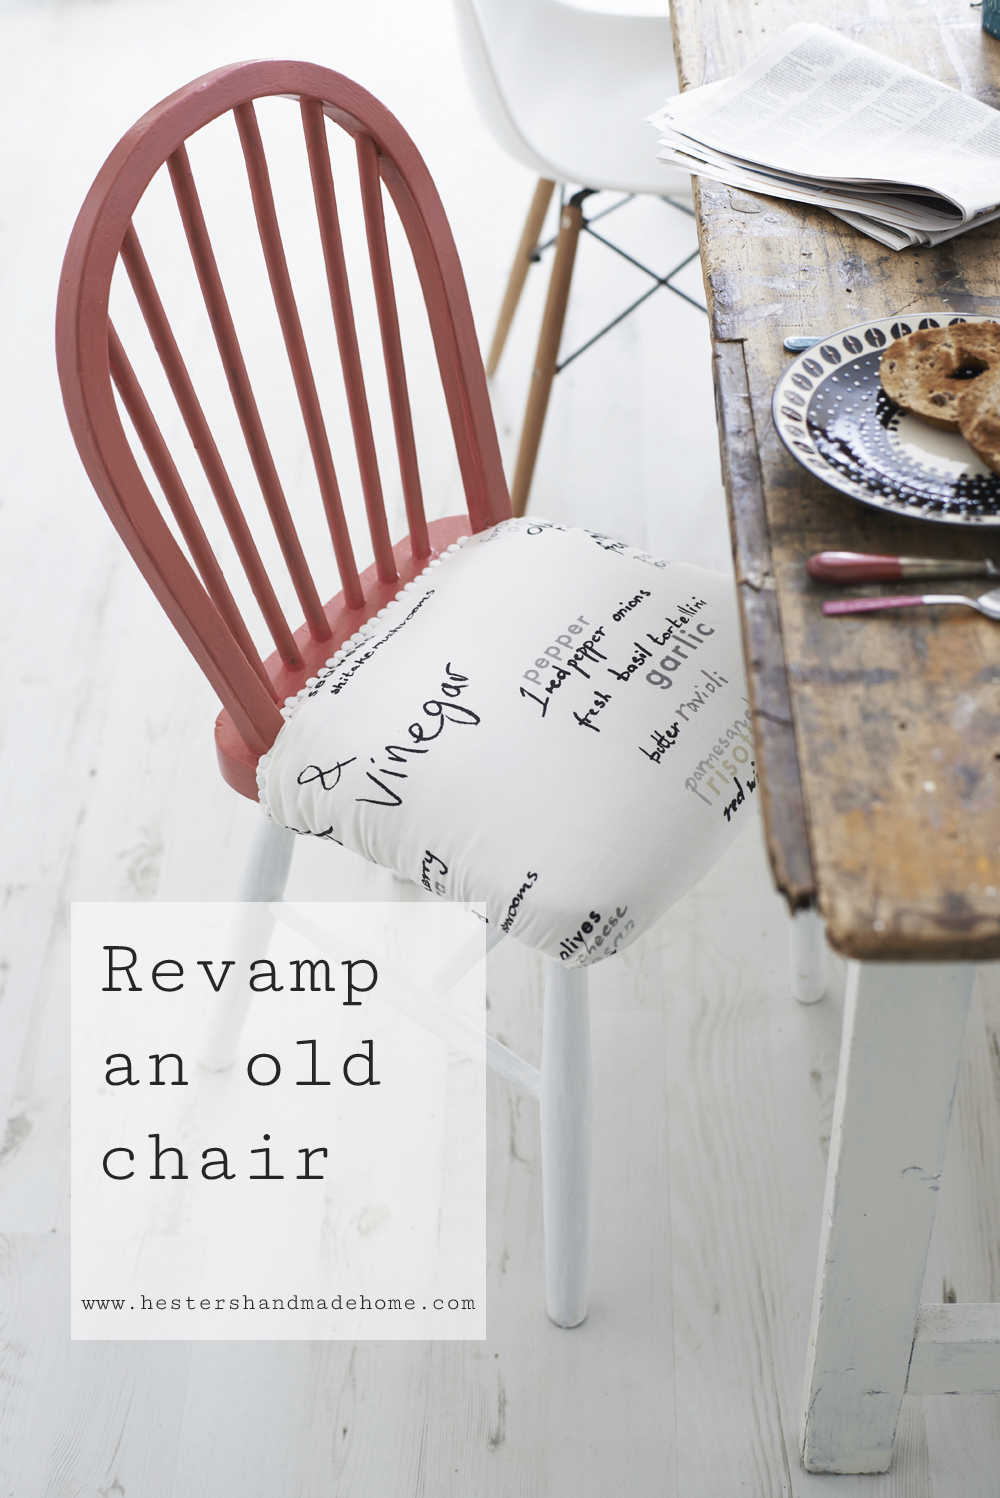 Revamp an ld chair, tutorial from the Furniture Hacks book by Hester van Overbeek